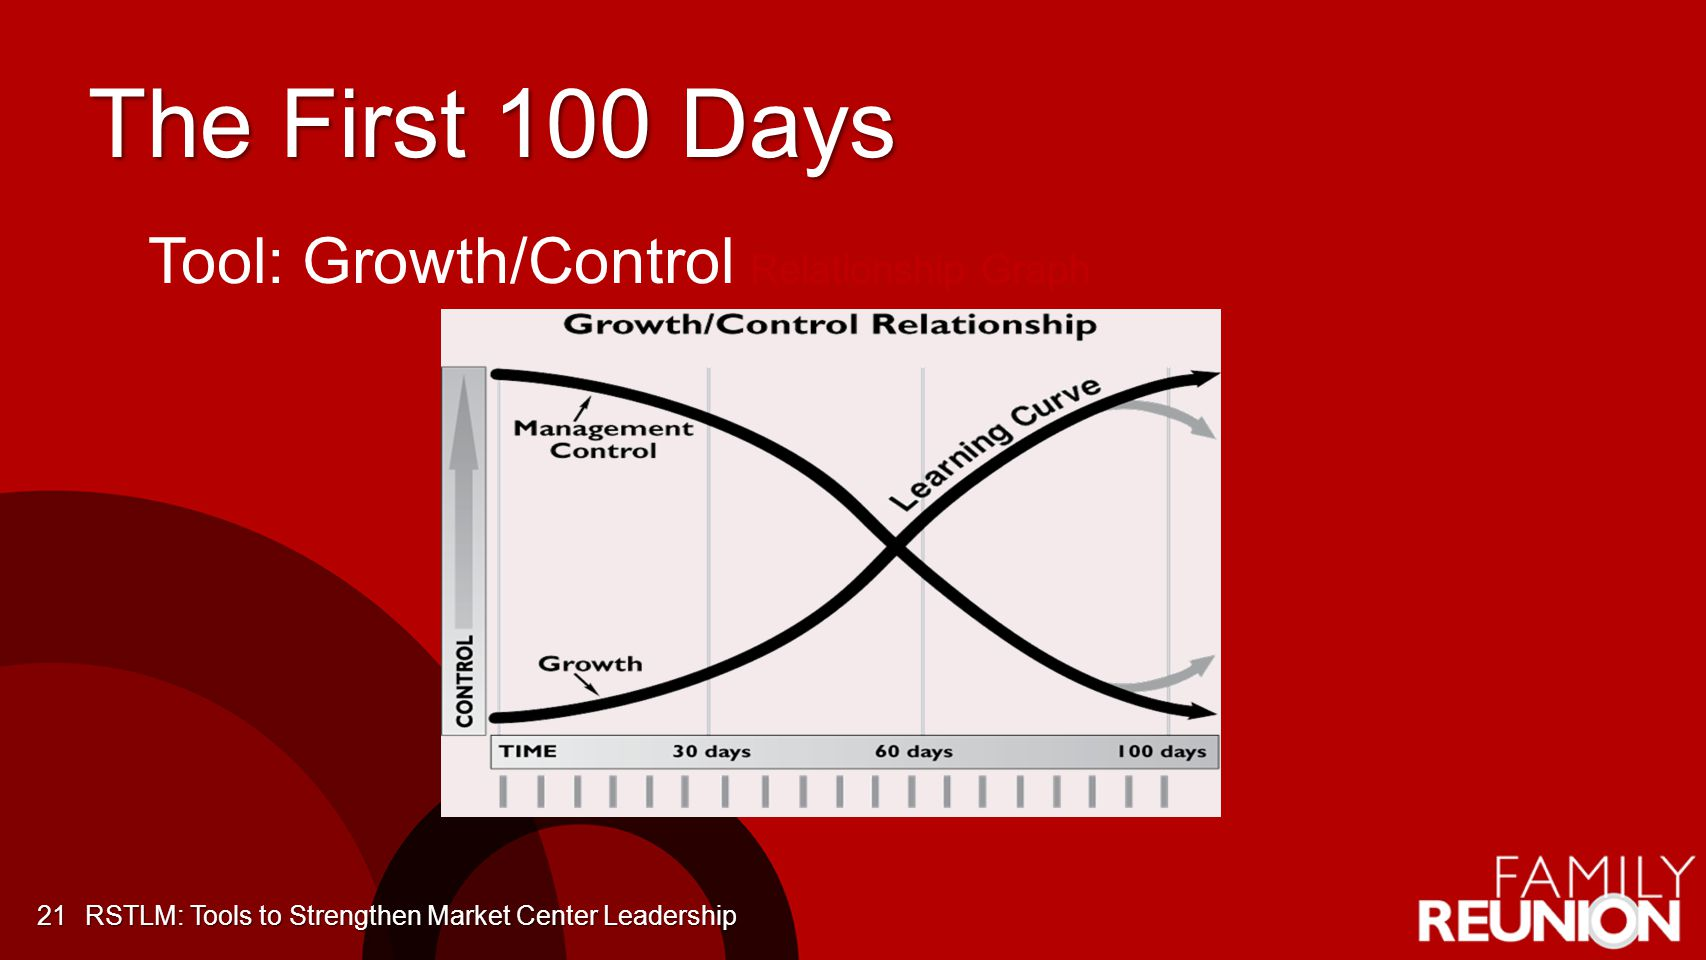 The First 100 Days RSTLM: Tools to Strengthen Market Center Leadership21 Tool: Growth/Control Relationship Graph